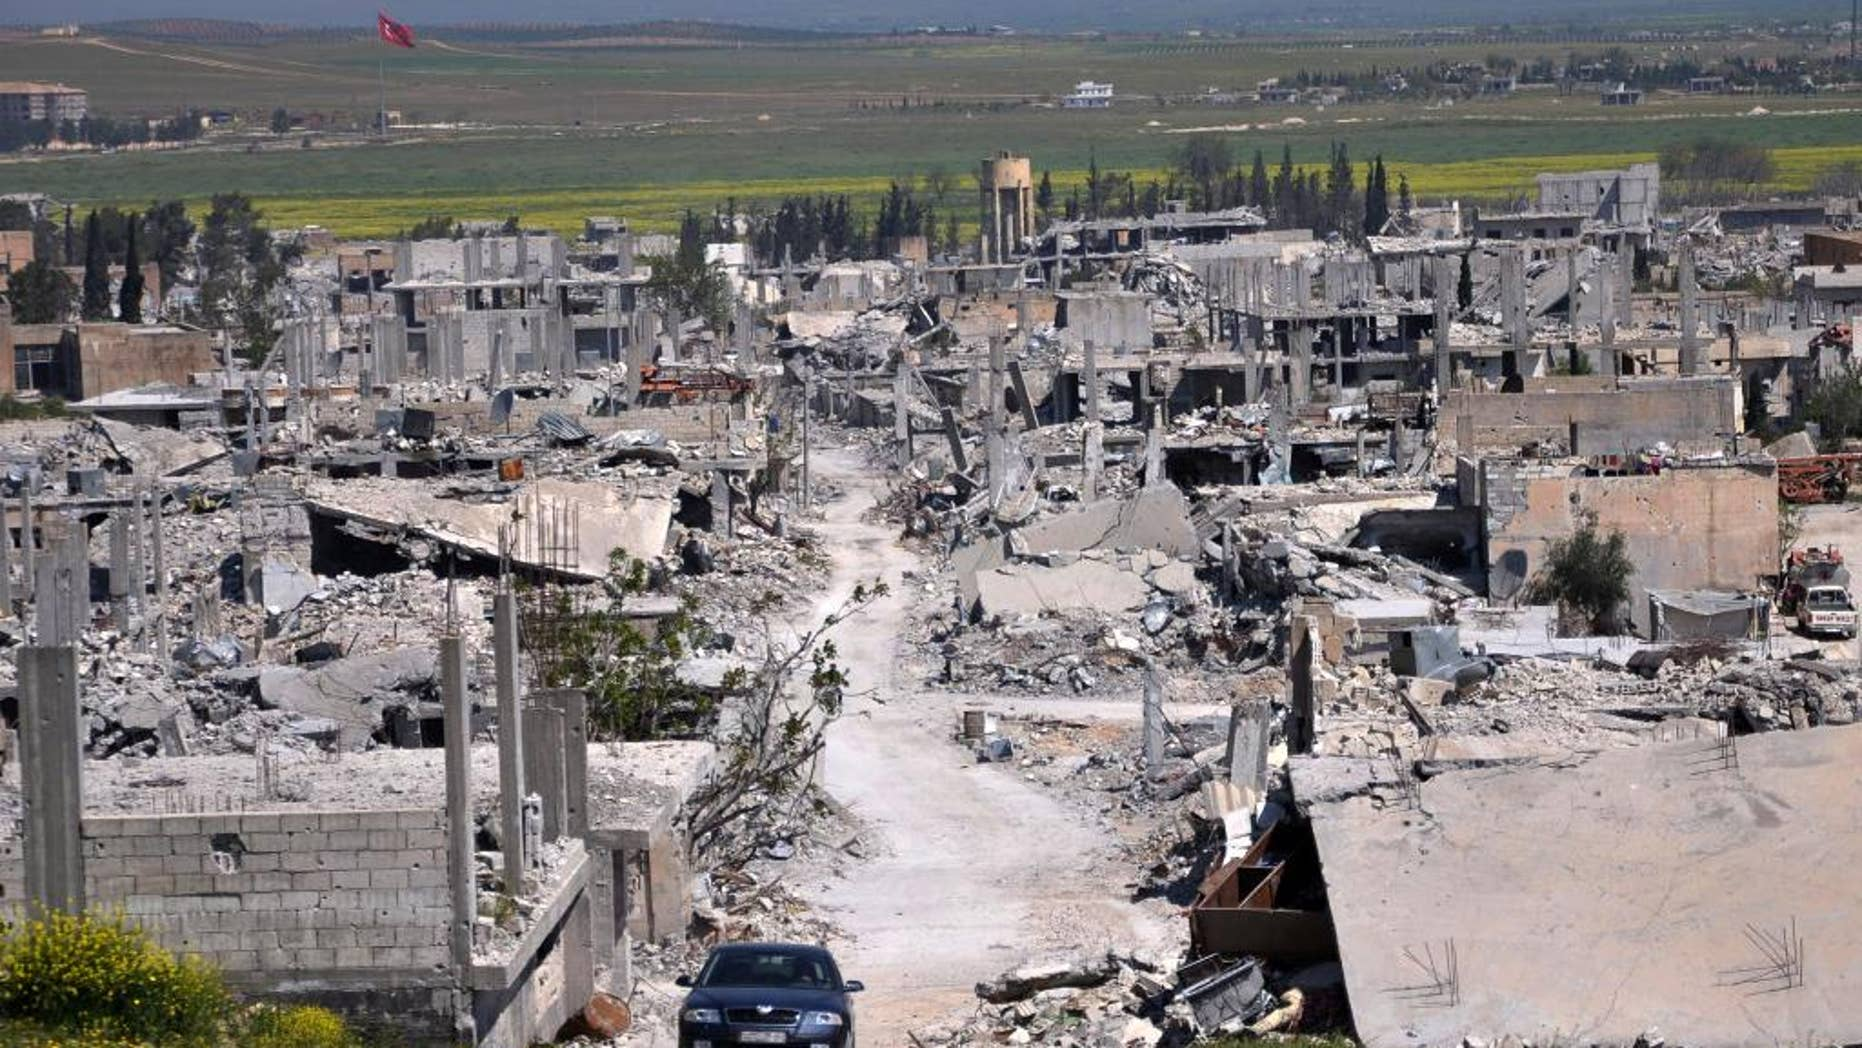 FILE - April 18, 2015: A car passes in an area that was destroyed during the battle between the U.S. backed Kurdish forces and the Islamic State fighters, in Kobani, north Syria.